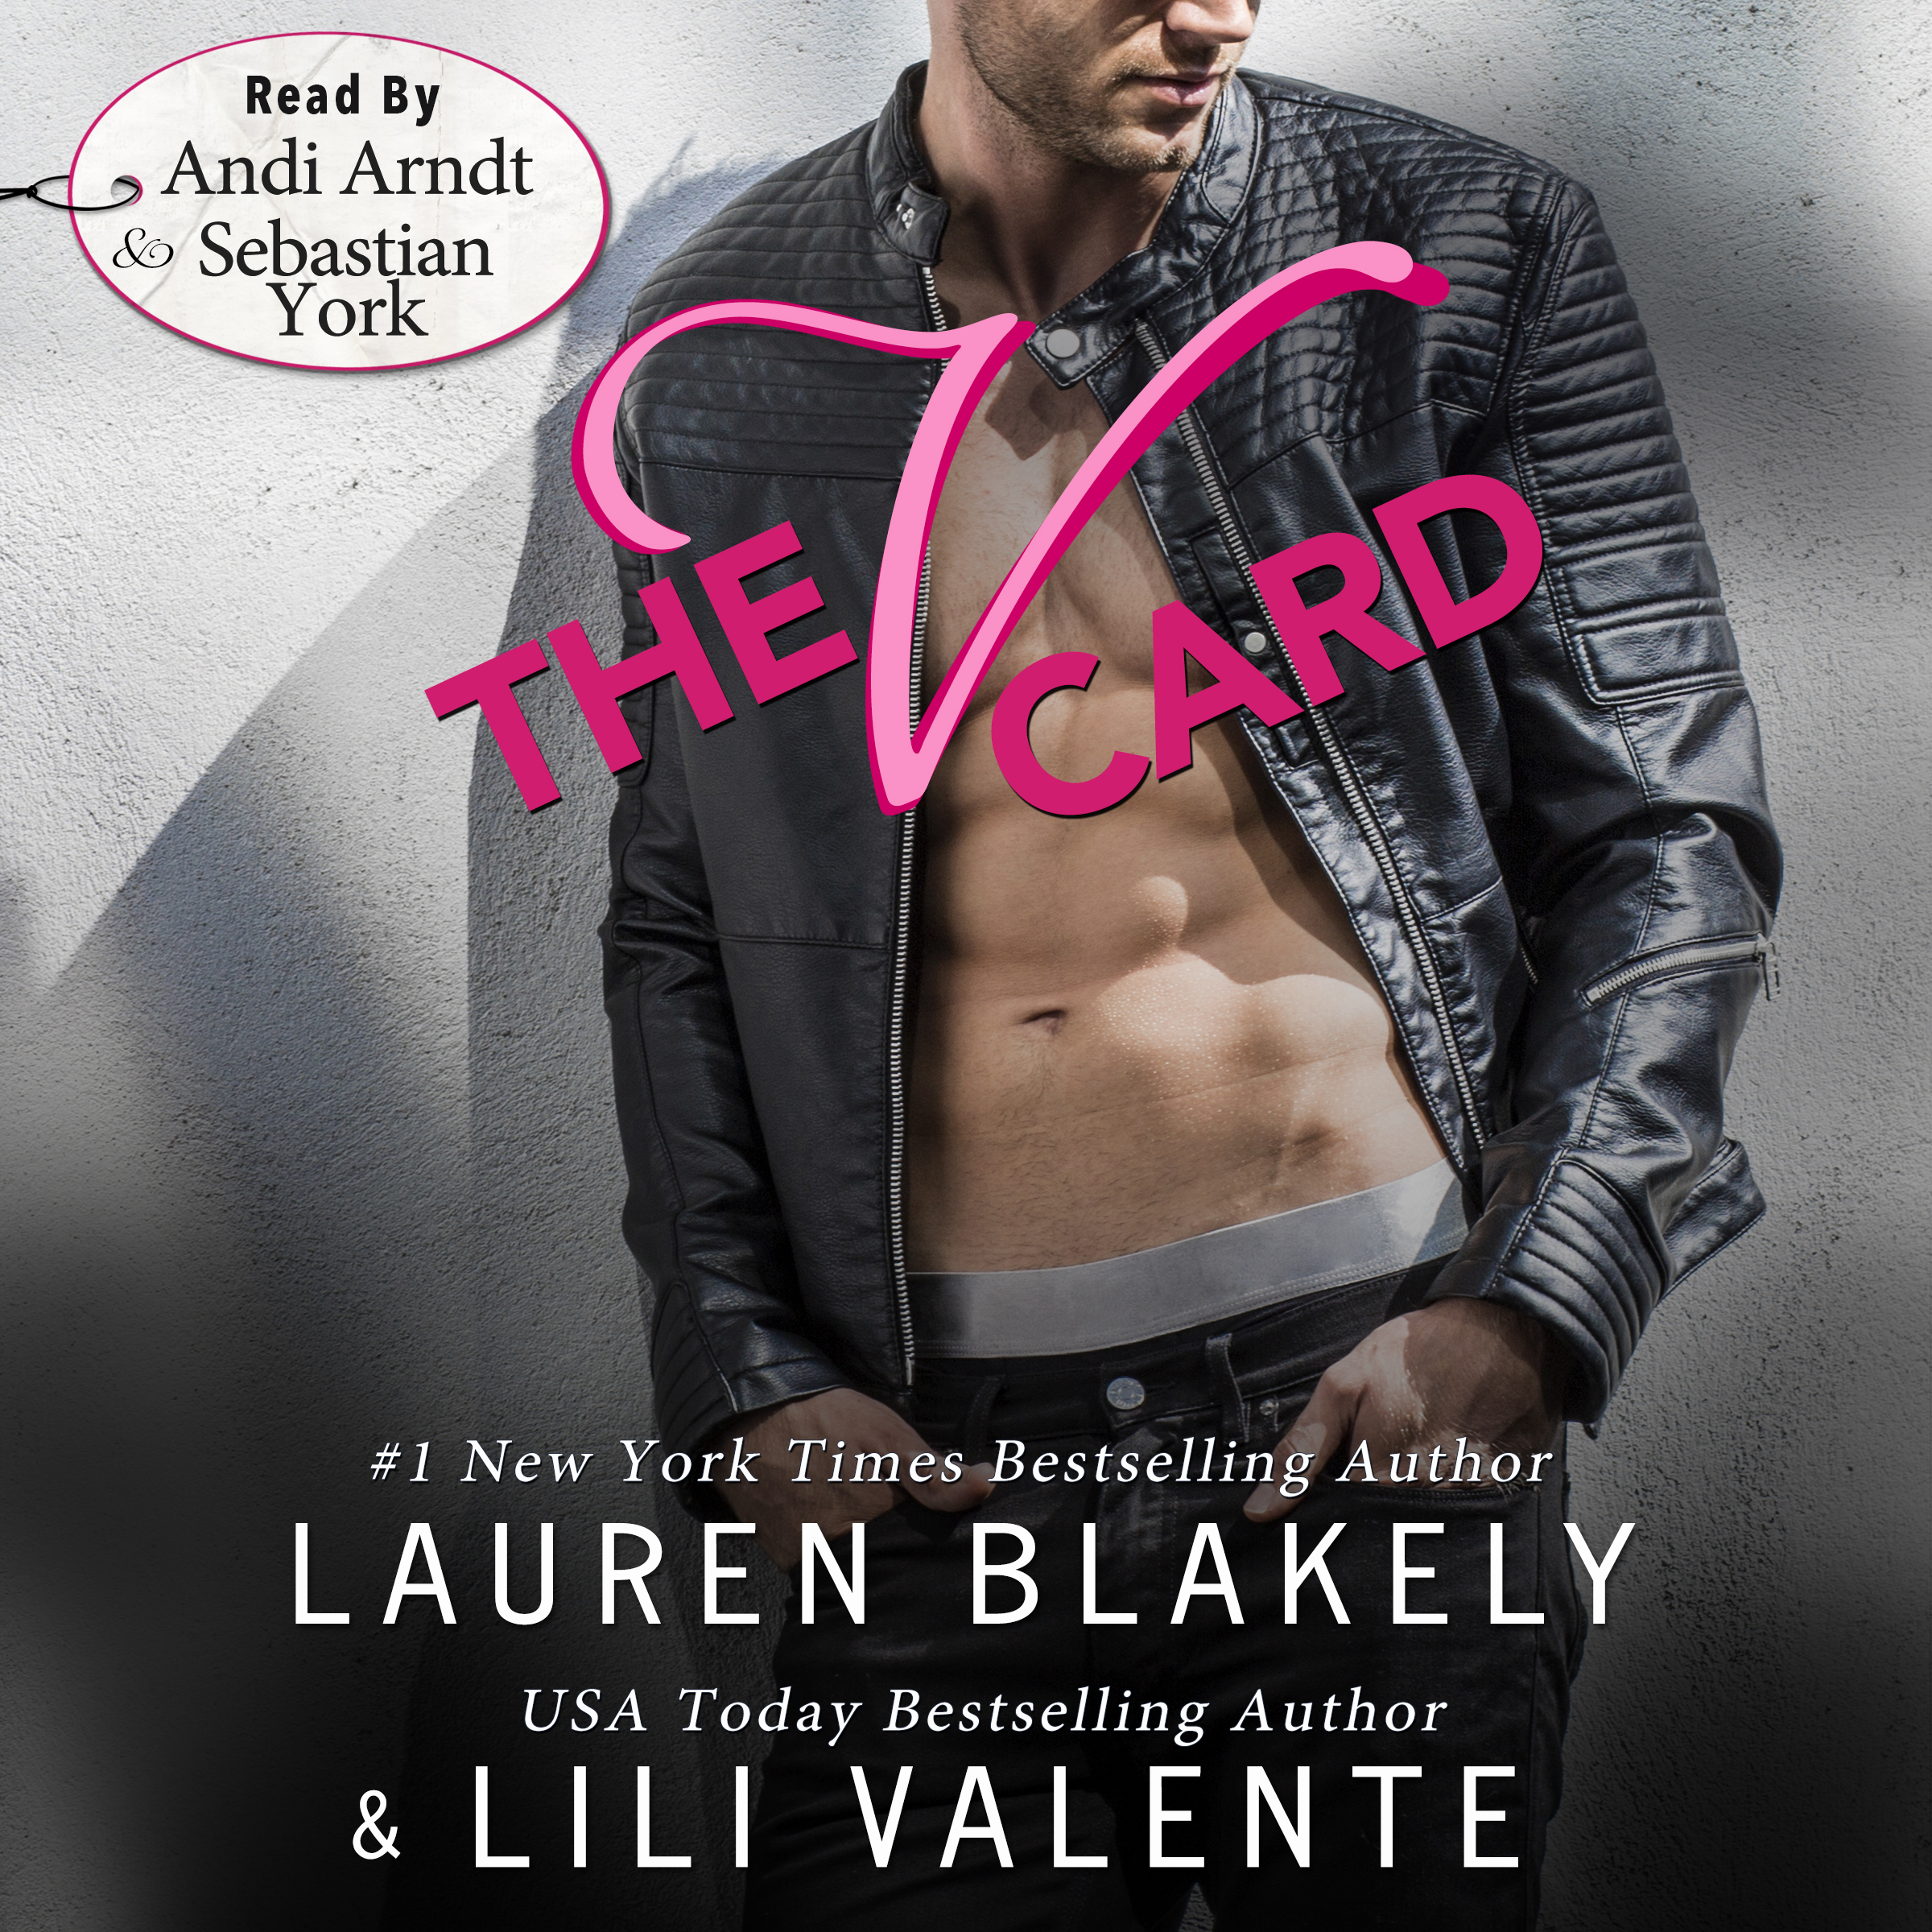 ✦The audiobook is narrated by Sebastian York and Andi Arndt!✦  ✦  Audio on Amazon   ➜  http://amzn.to/2C7aVQP   ✦Audible   ➜  http://adbl.co/2zo9eAJ